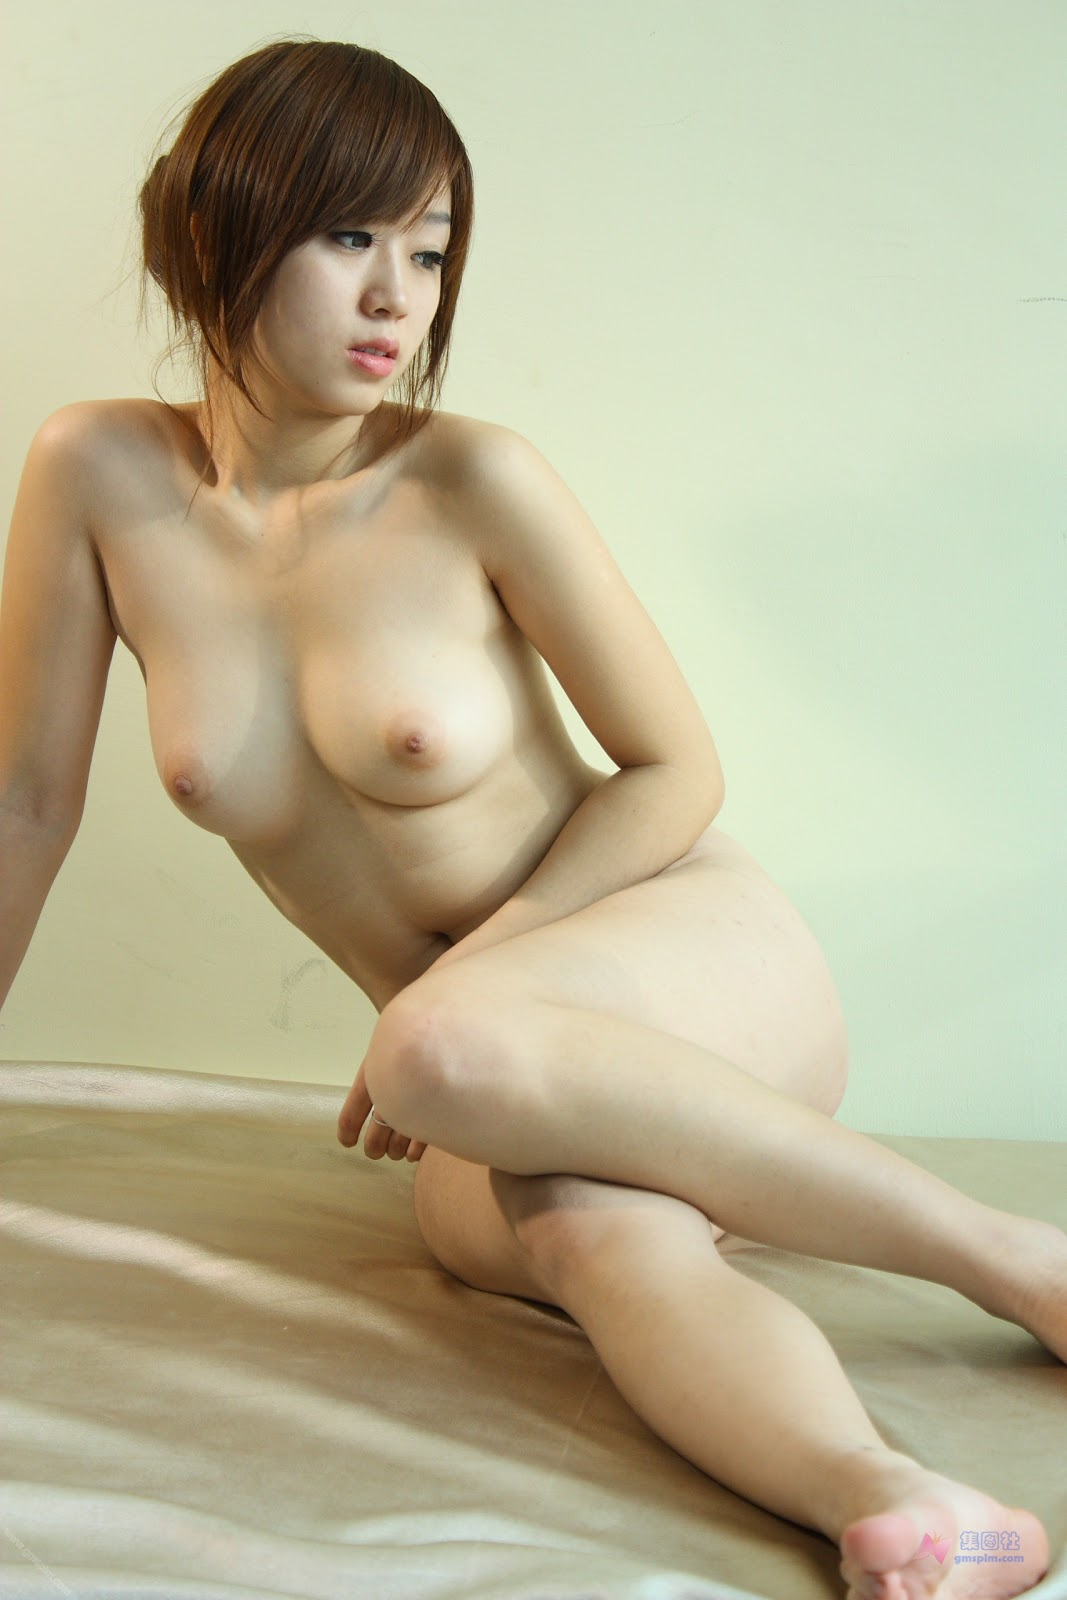 Agree, very Sexiest nude chinese model